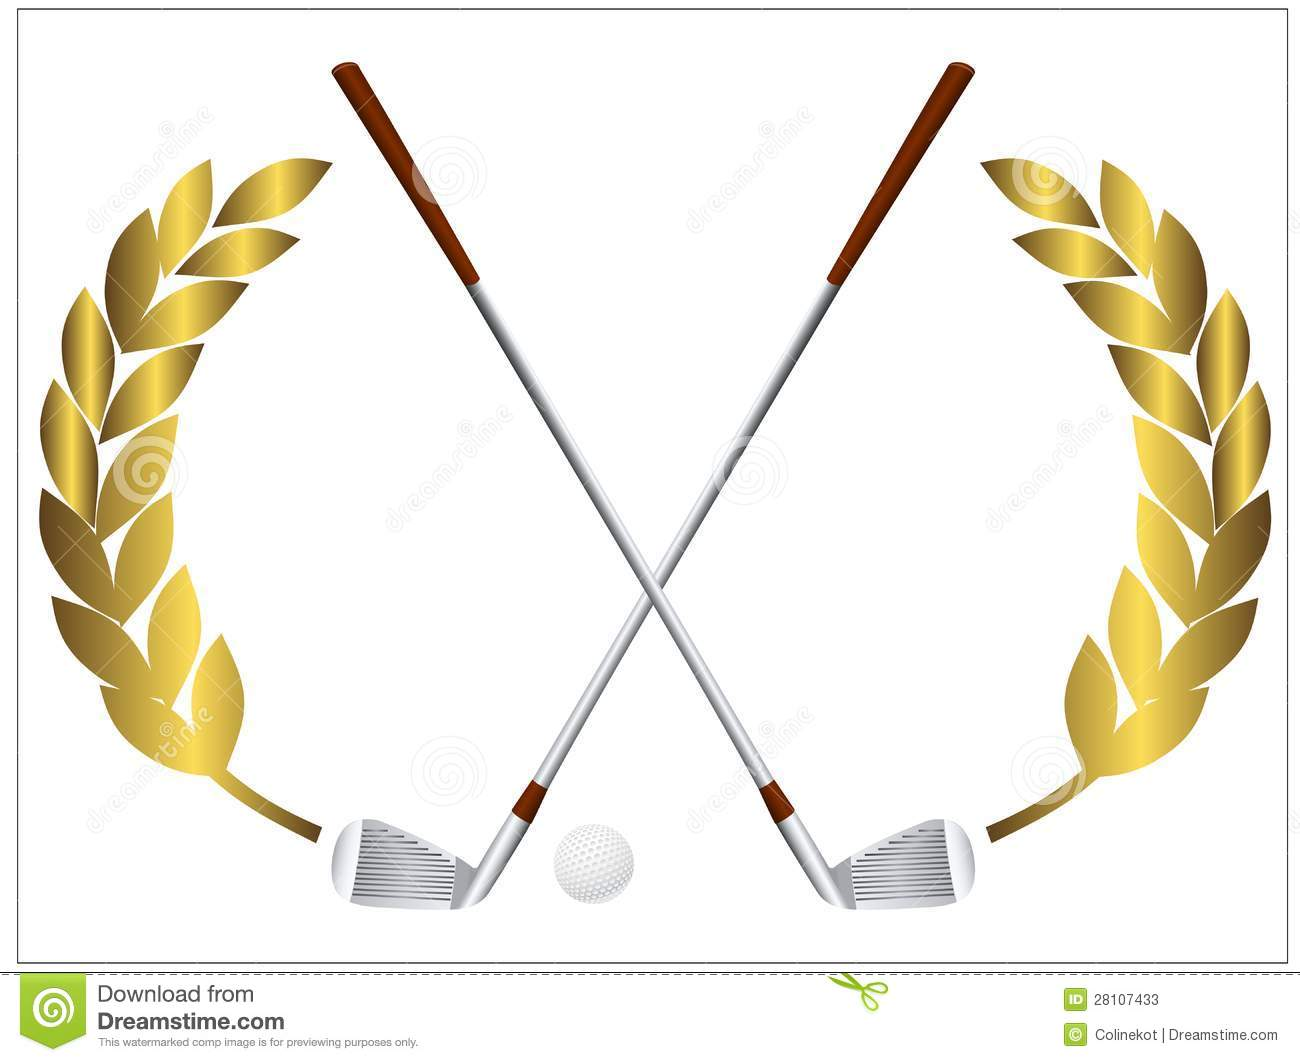 Vector illustration of a golf ball and crossing golf clubs.